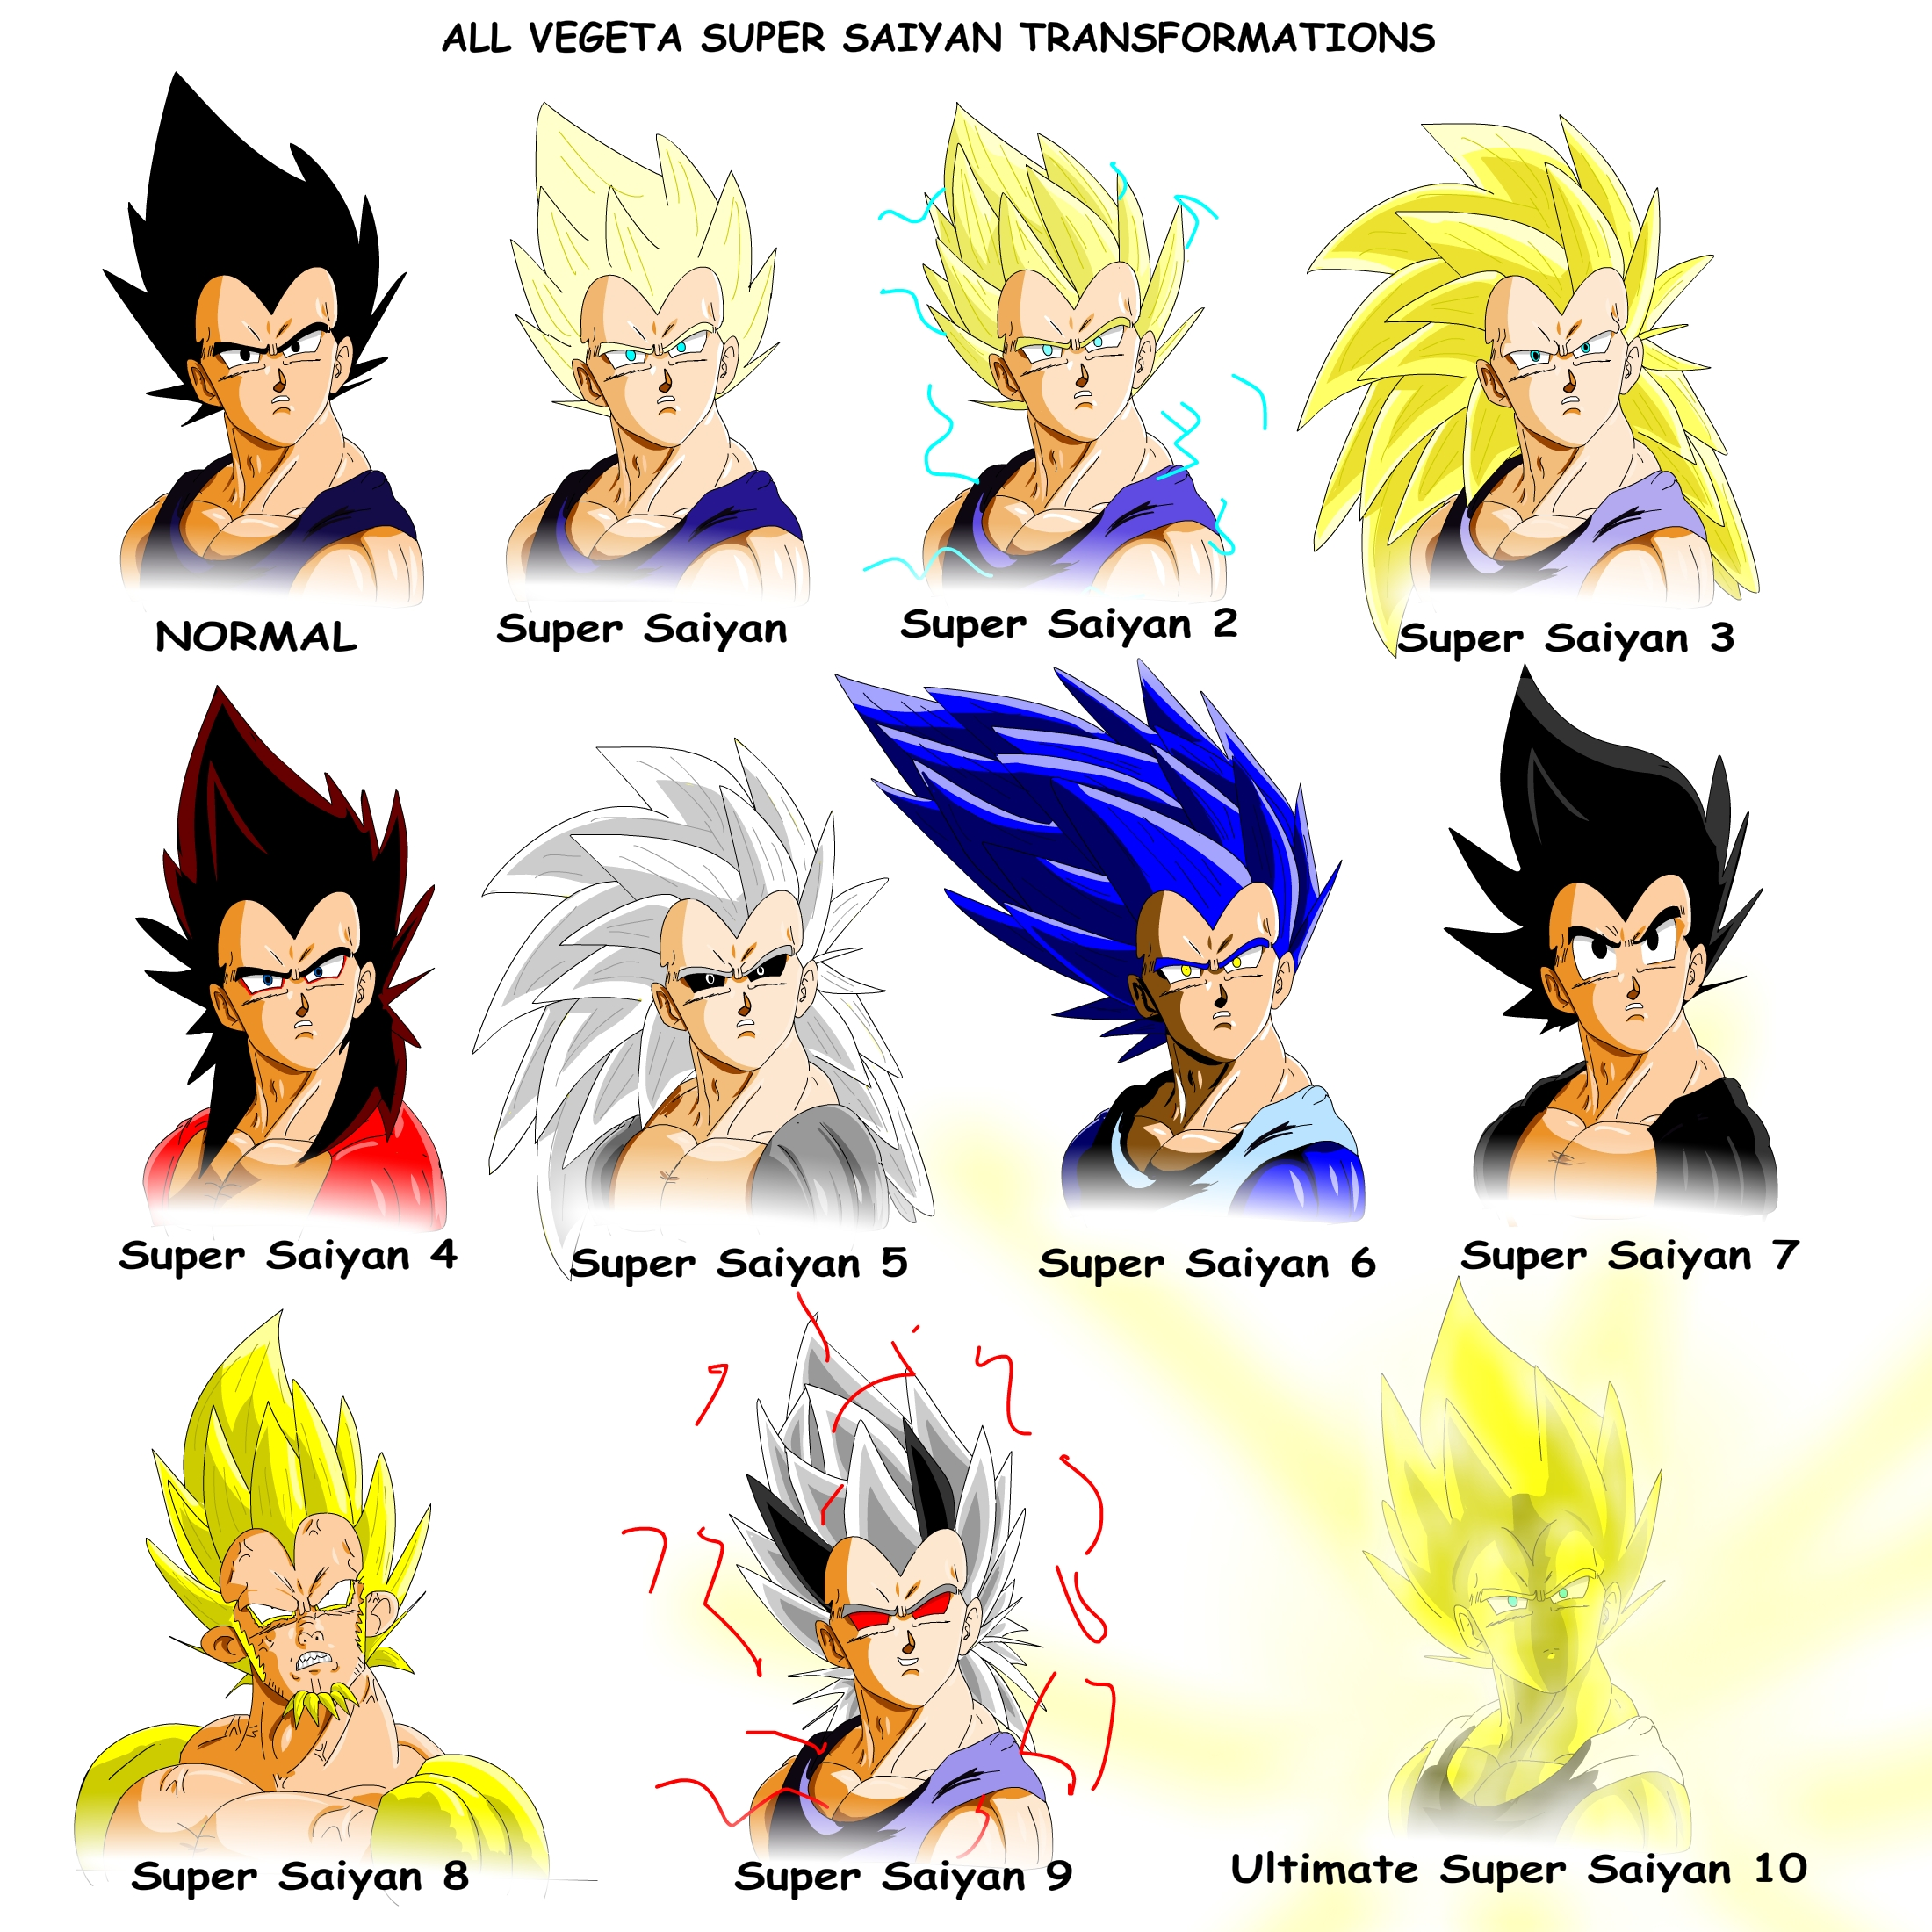 All Vegeta Super Saiyan Transformations by bocodamondo